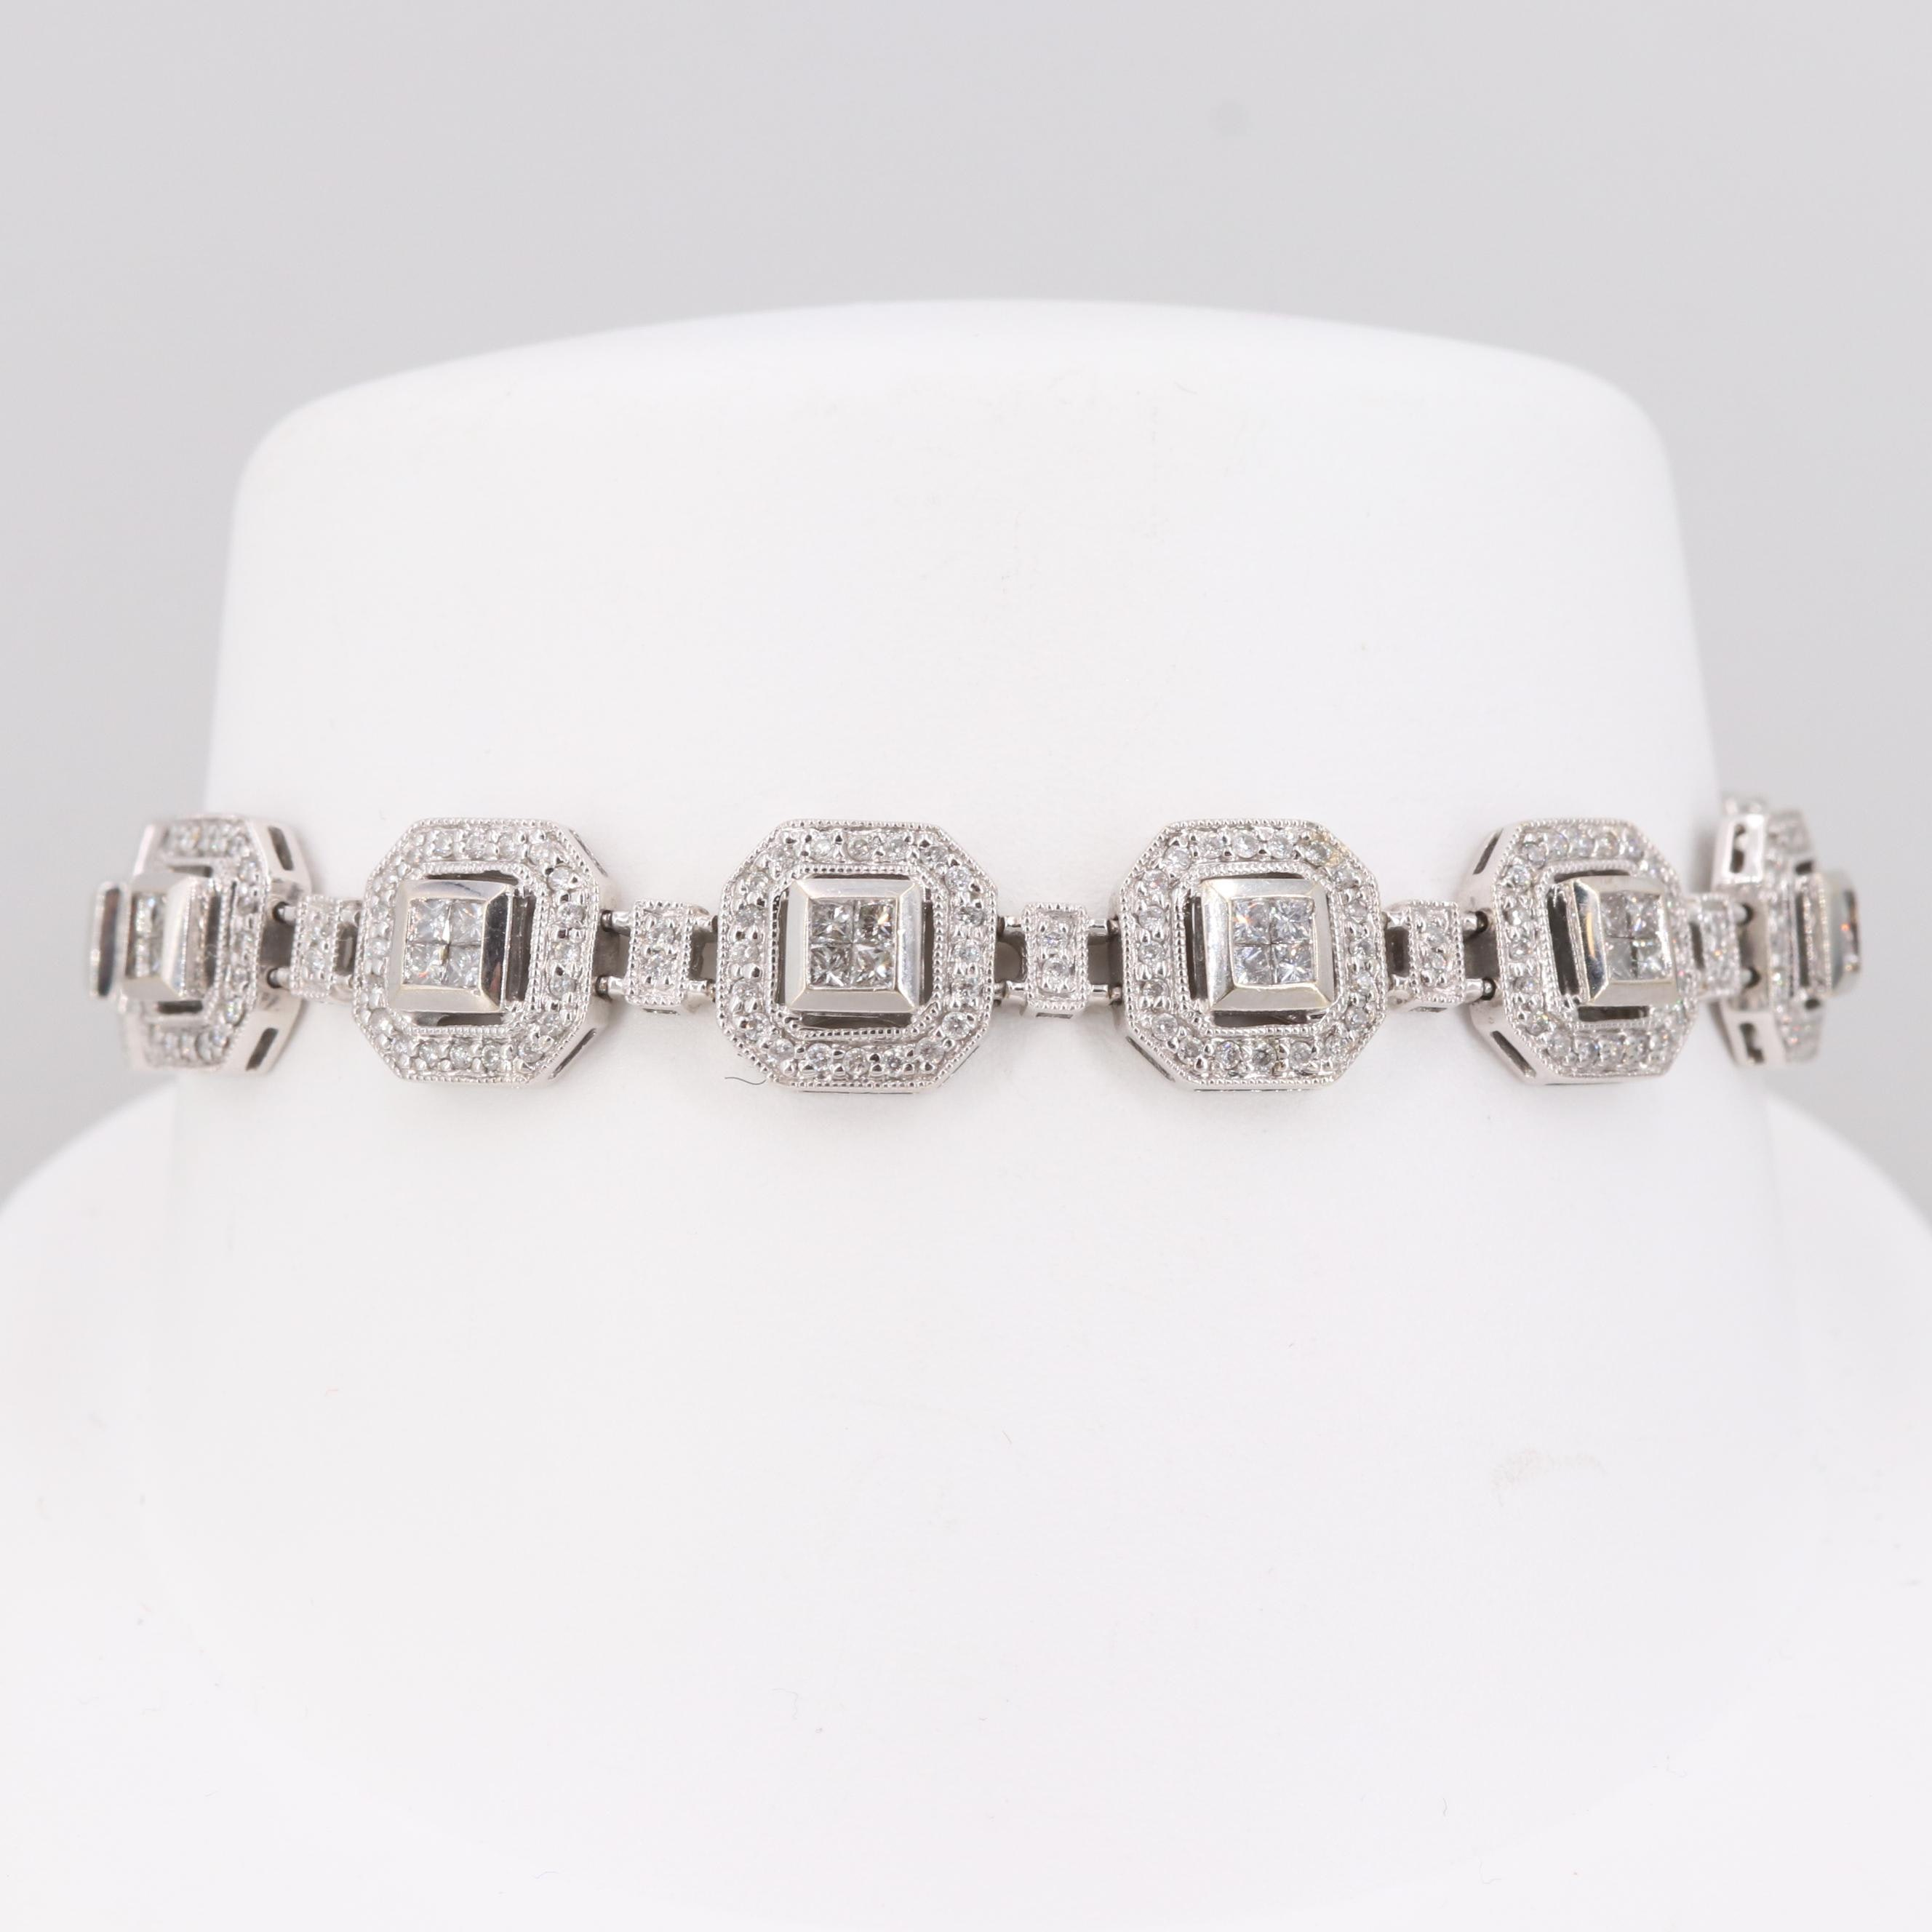 14K White Gold 2.50 CTW Diamond Link Bracelet